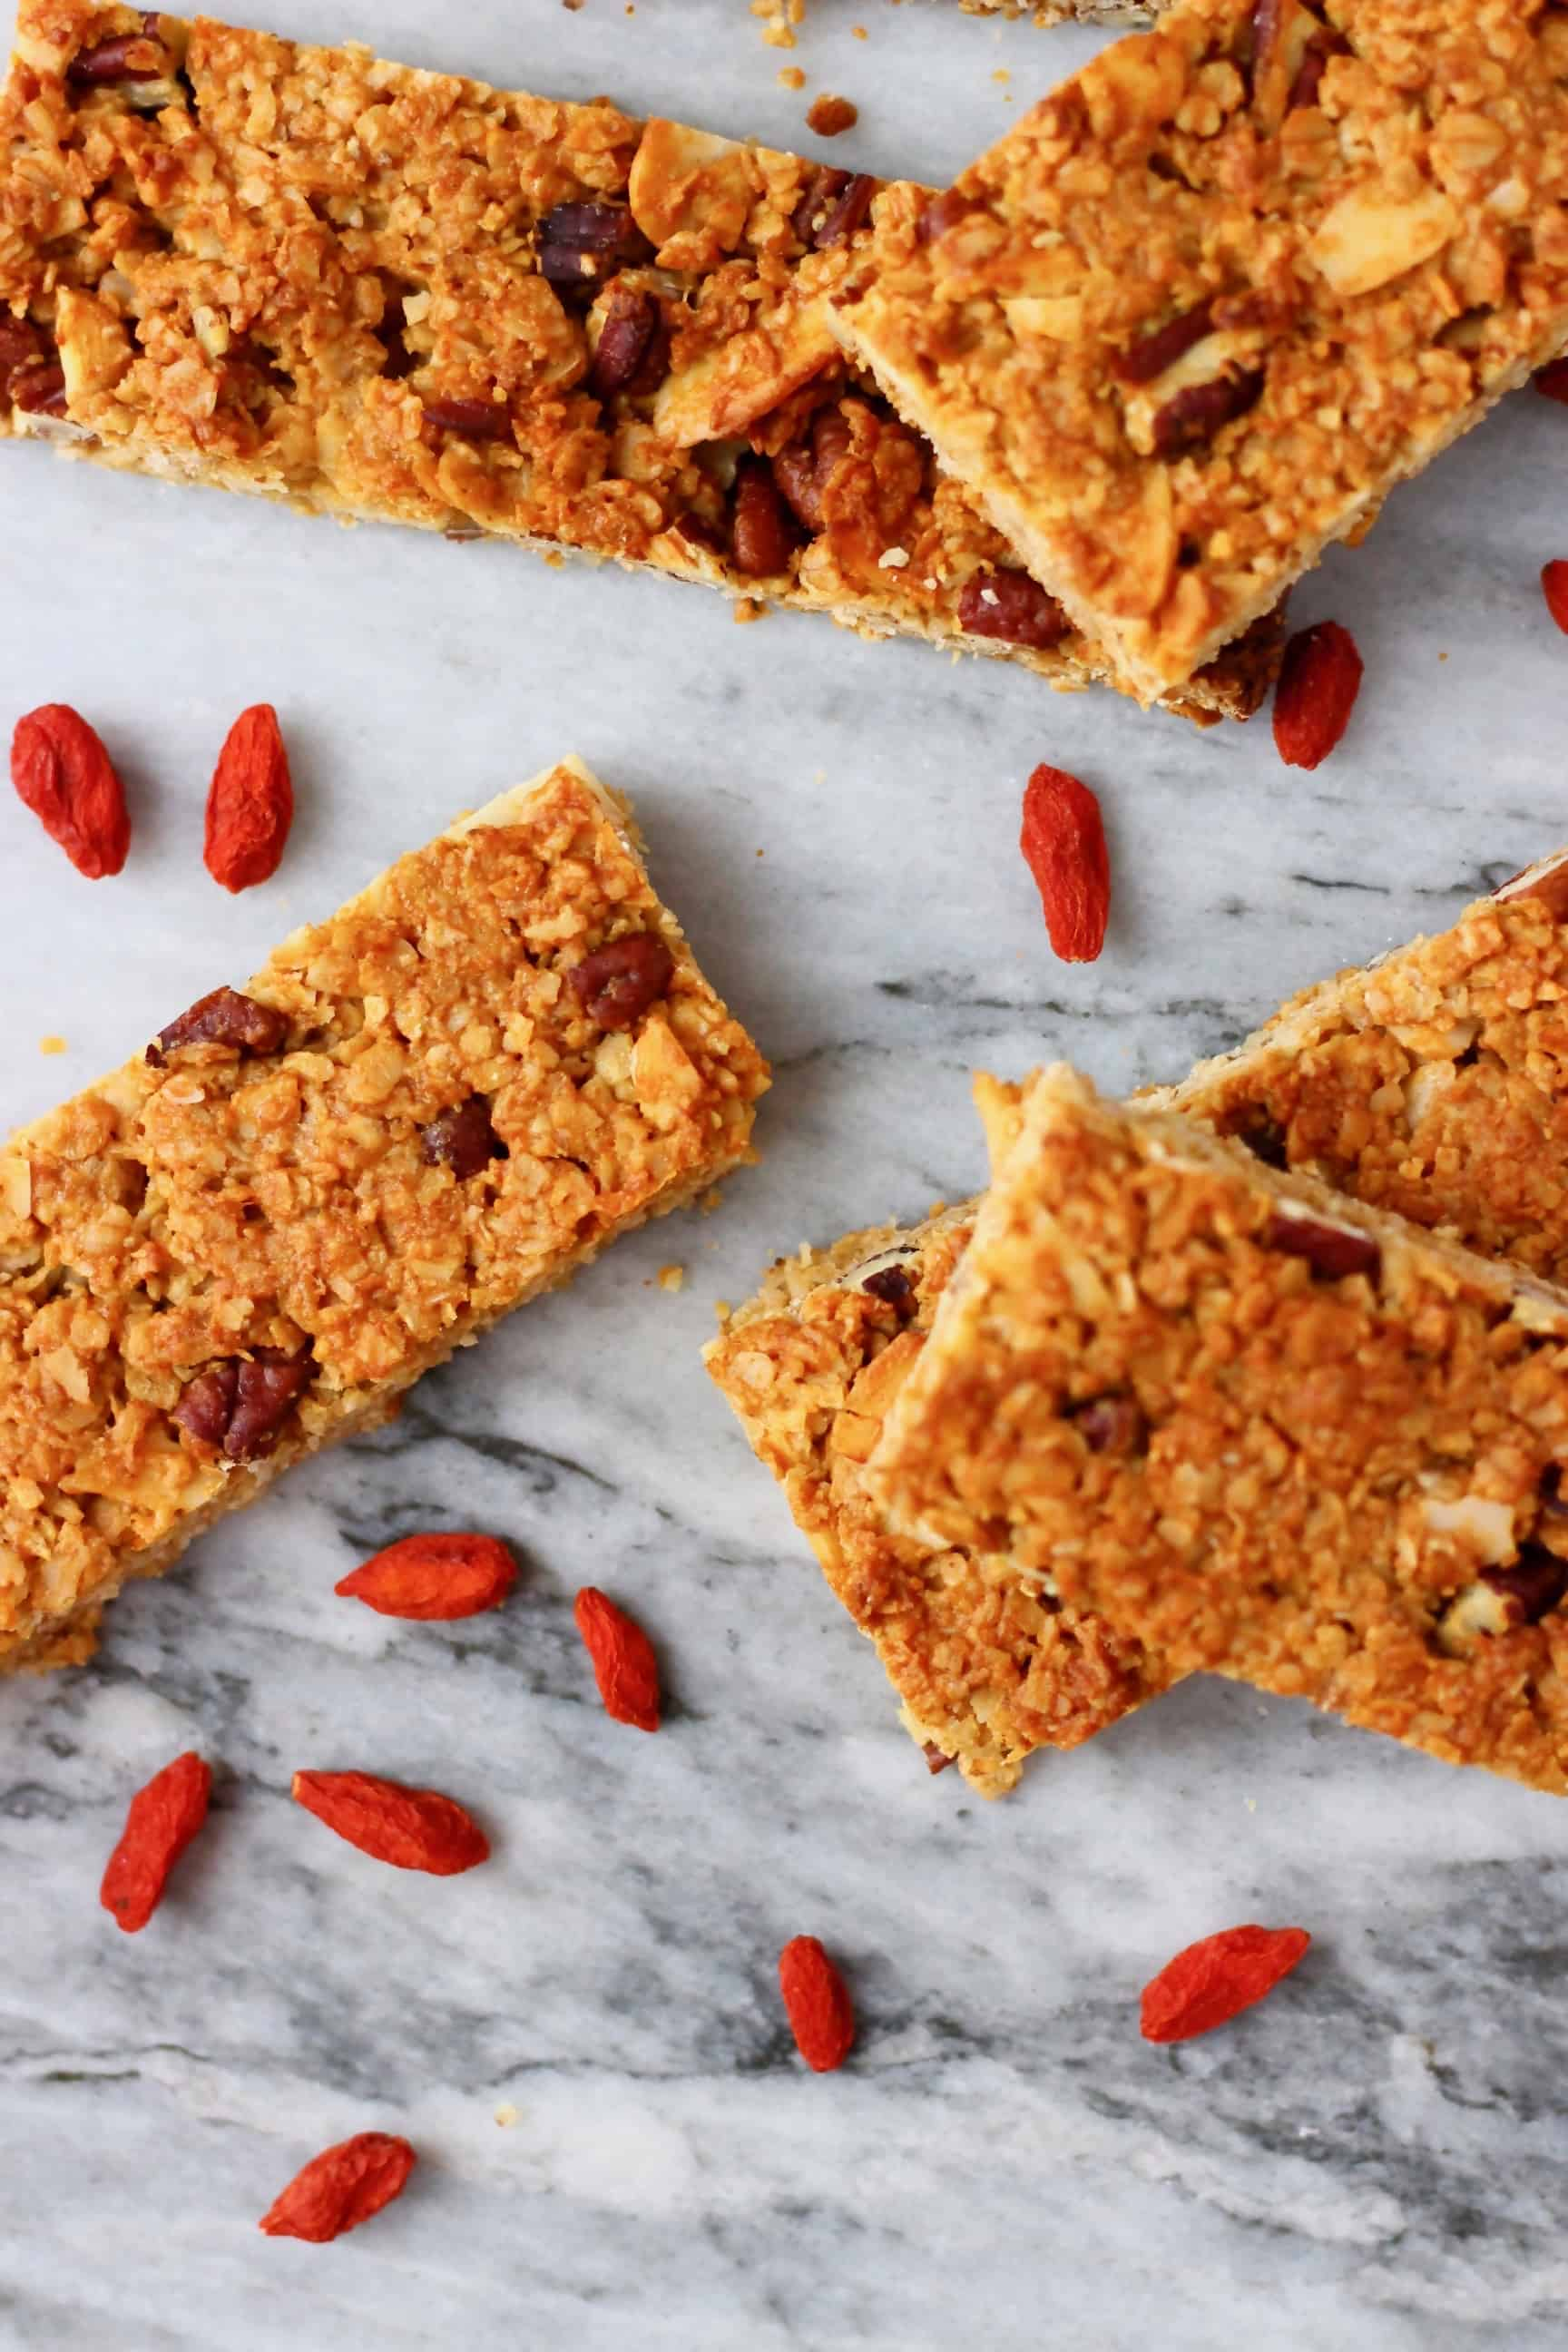 Five vegan granola bars on a marble background